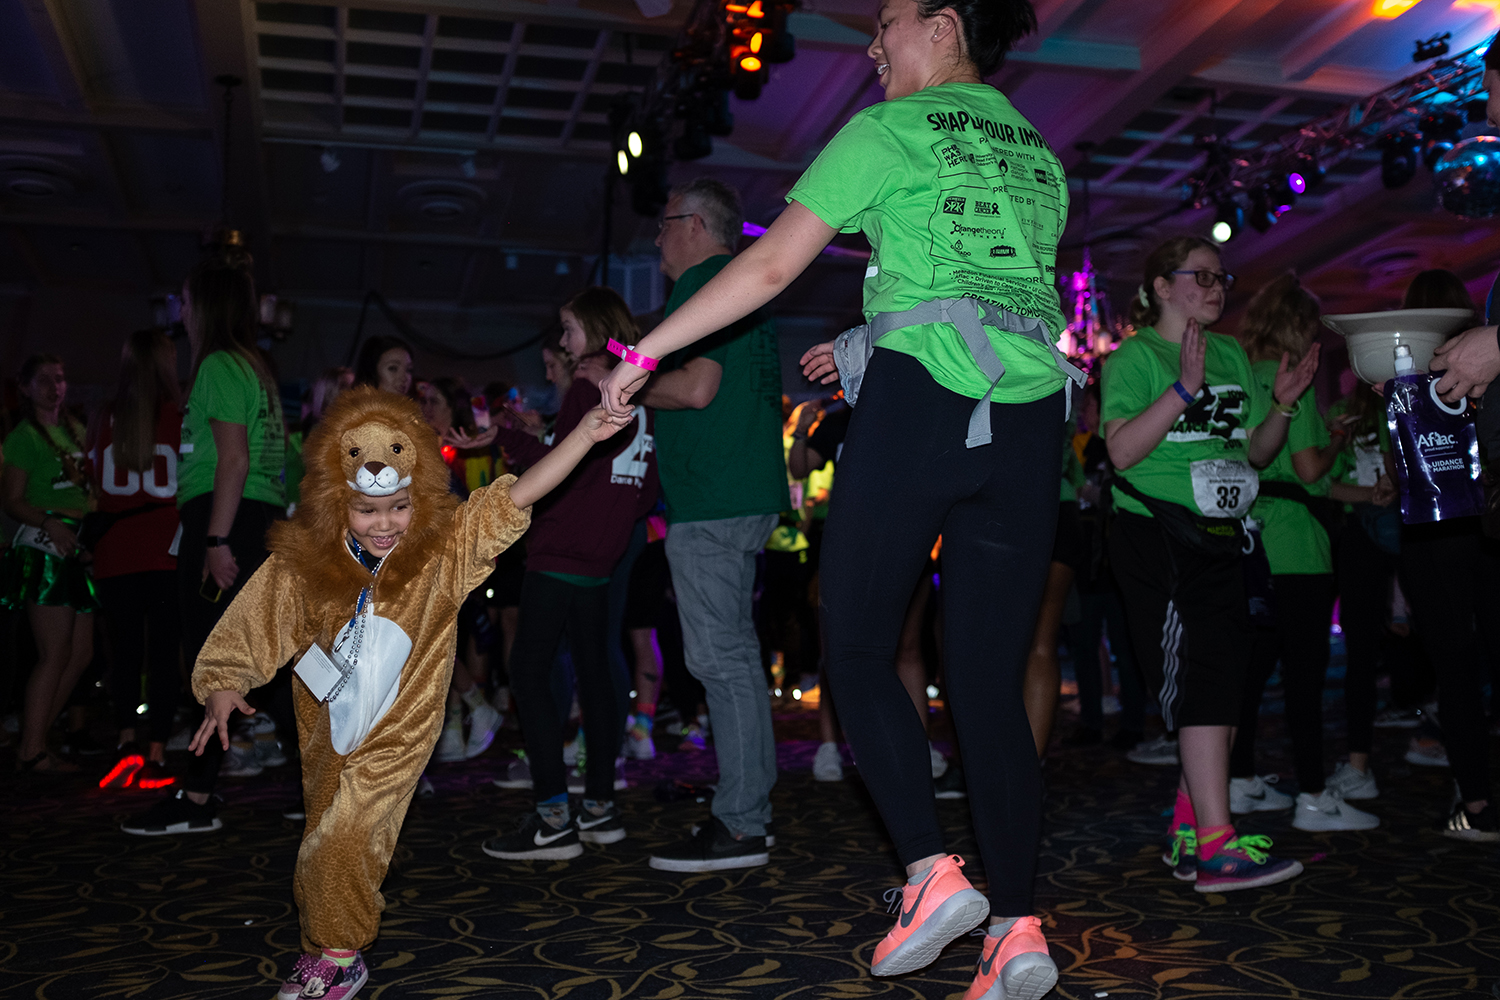 A+dancer+dressed+as+a+lion+busts+a+move+during+Dance+Marathon+25+at+the+Iowa+Memorial+Union+on+Friday%2C+Feb.+1%2C+2019.+As+the+Big+Event+moved+into+its+fourth+hour%2C+participants+showed+no+signs+of+slowing+down.